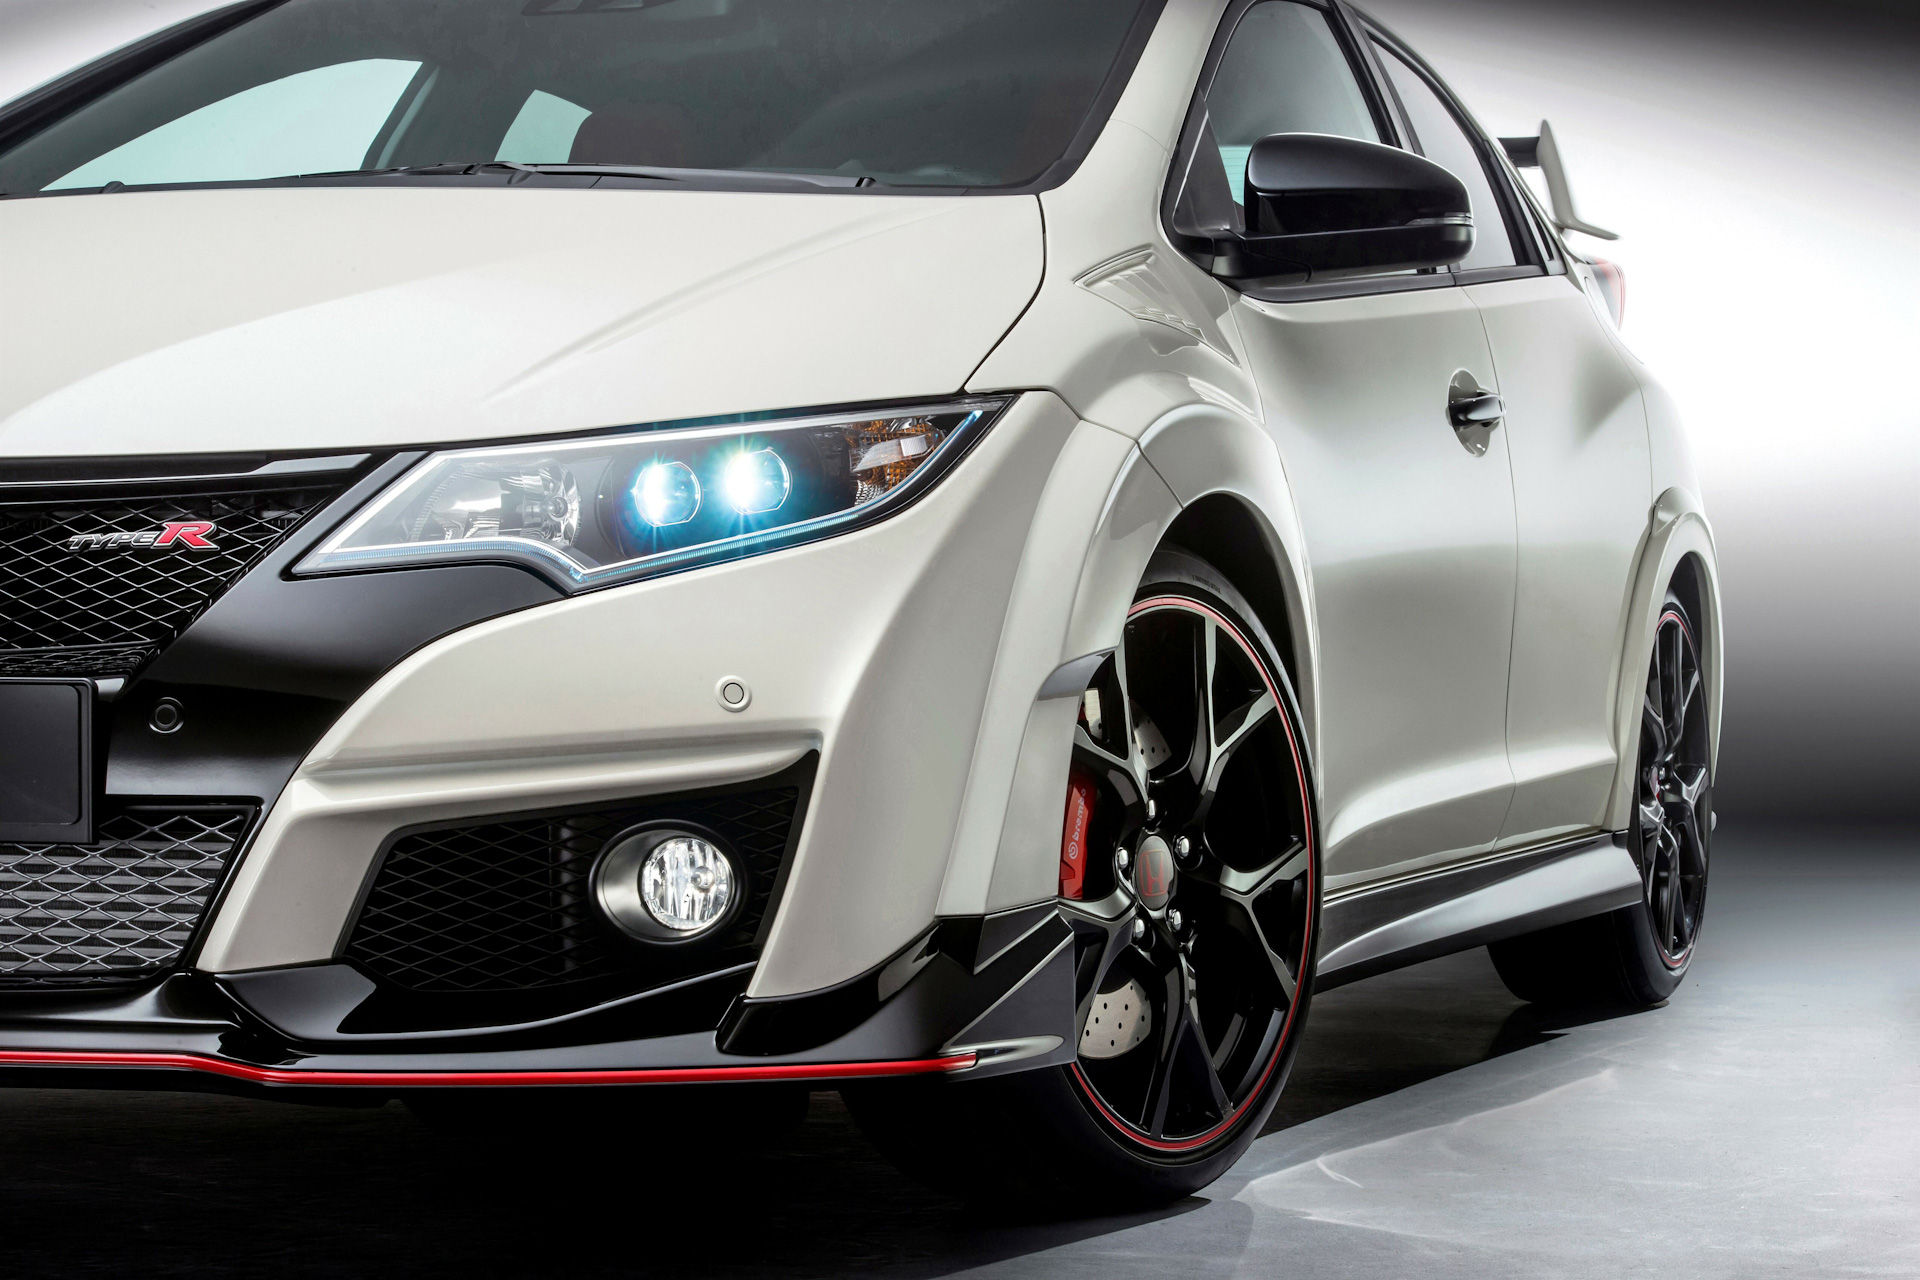 honda civic type r reborn in a 5 7 second 231kw vtec turbo. Black Bedroom Furniture Sets. Home Design Ideas